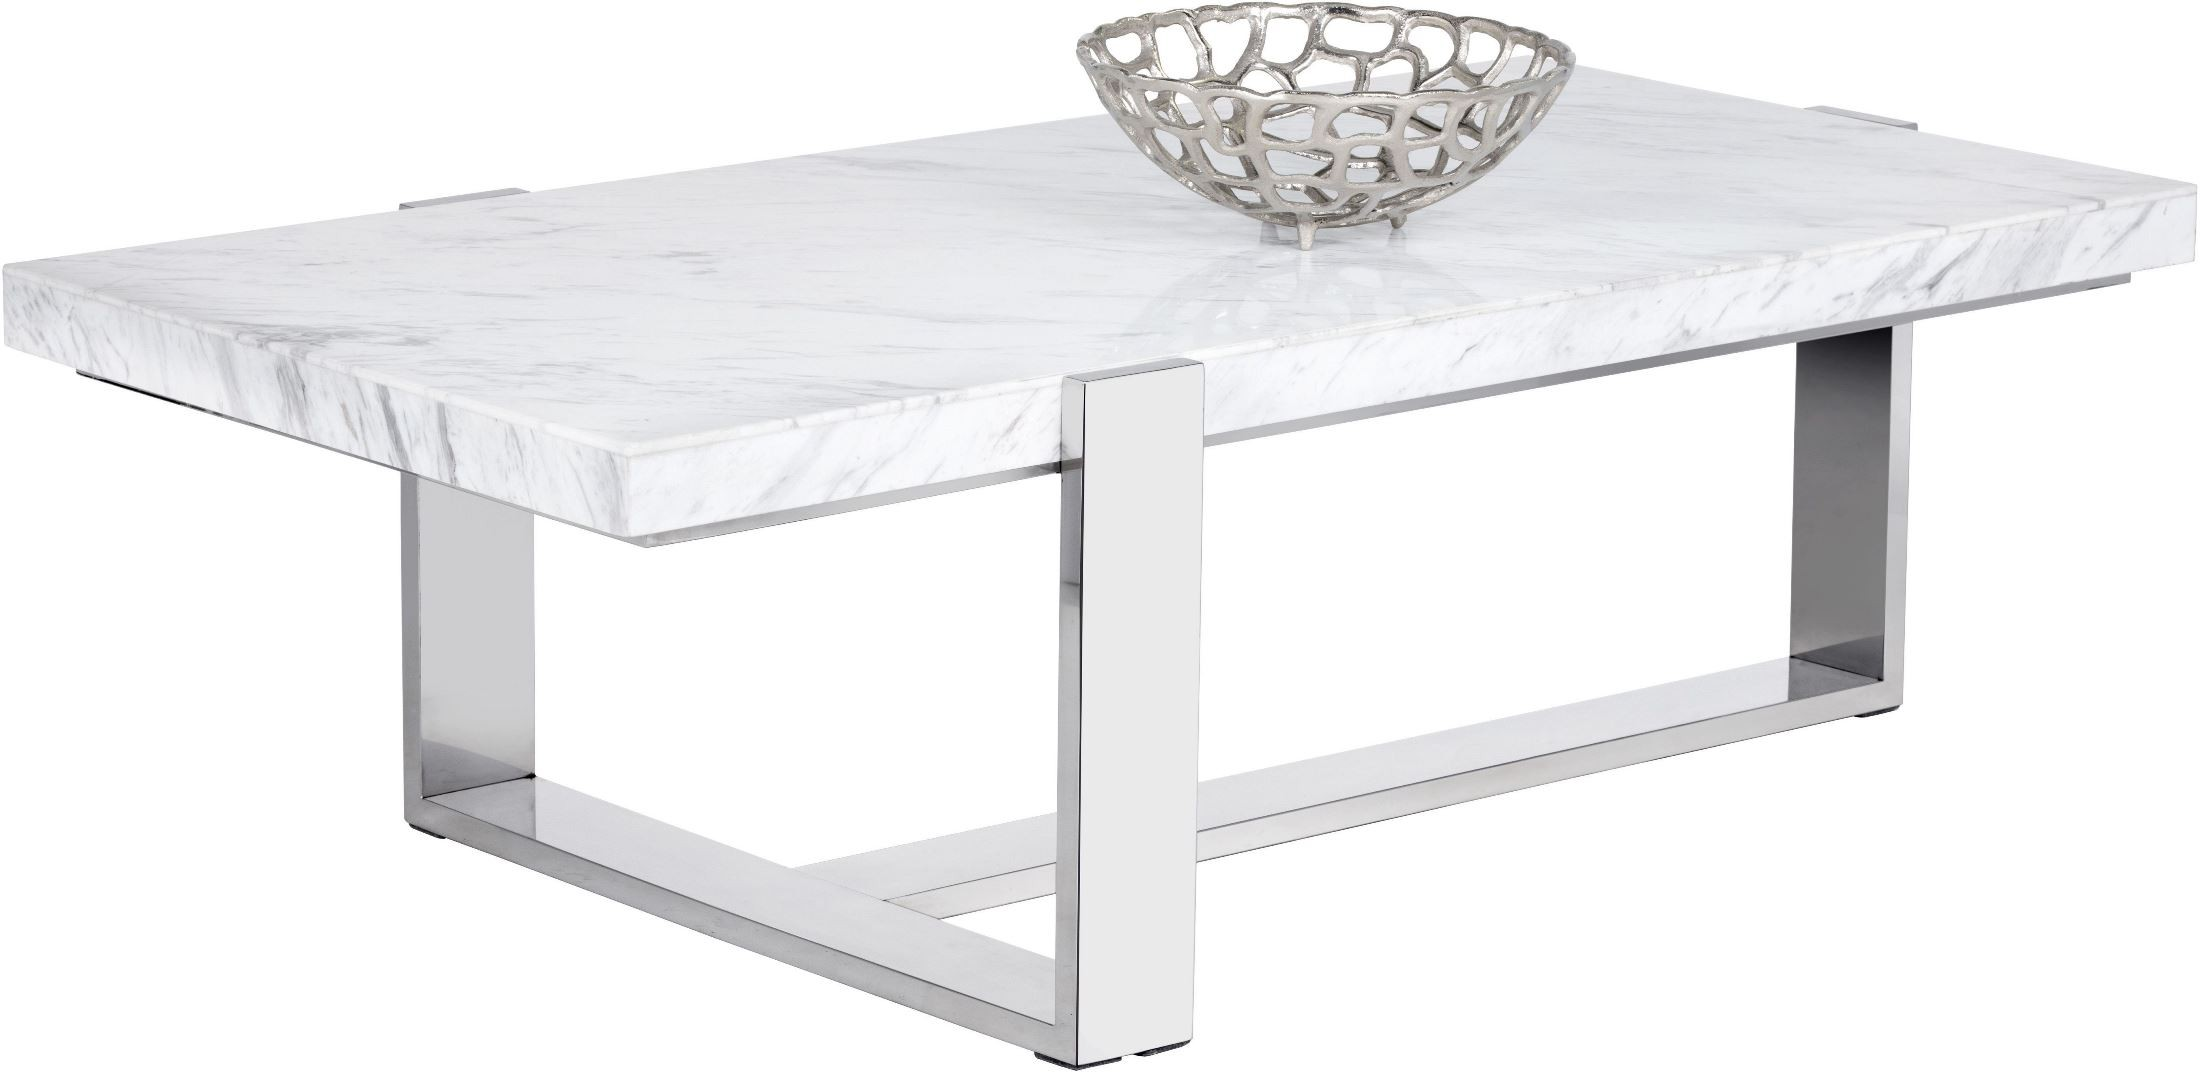 Tribecca White Marble Rectangular Coffee Table From Sunpan Coleman - Rectangle white marble coffee table